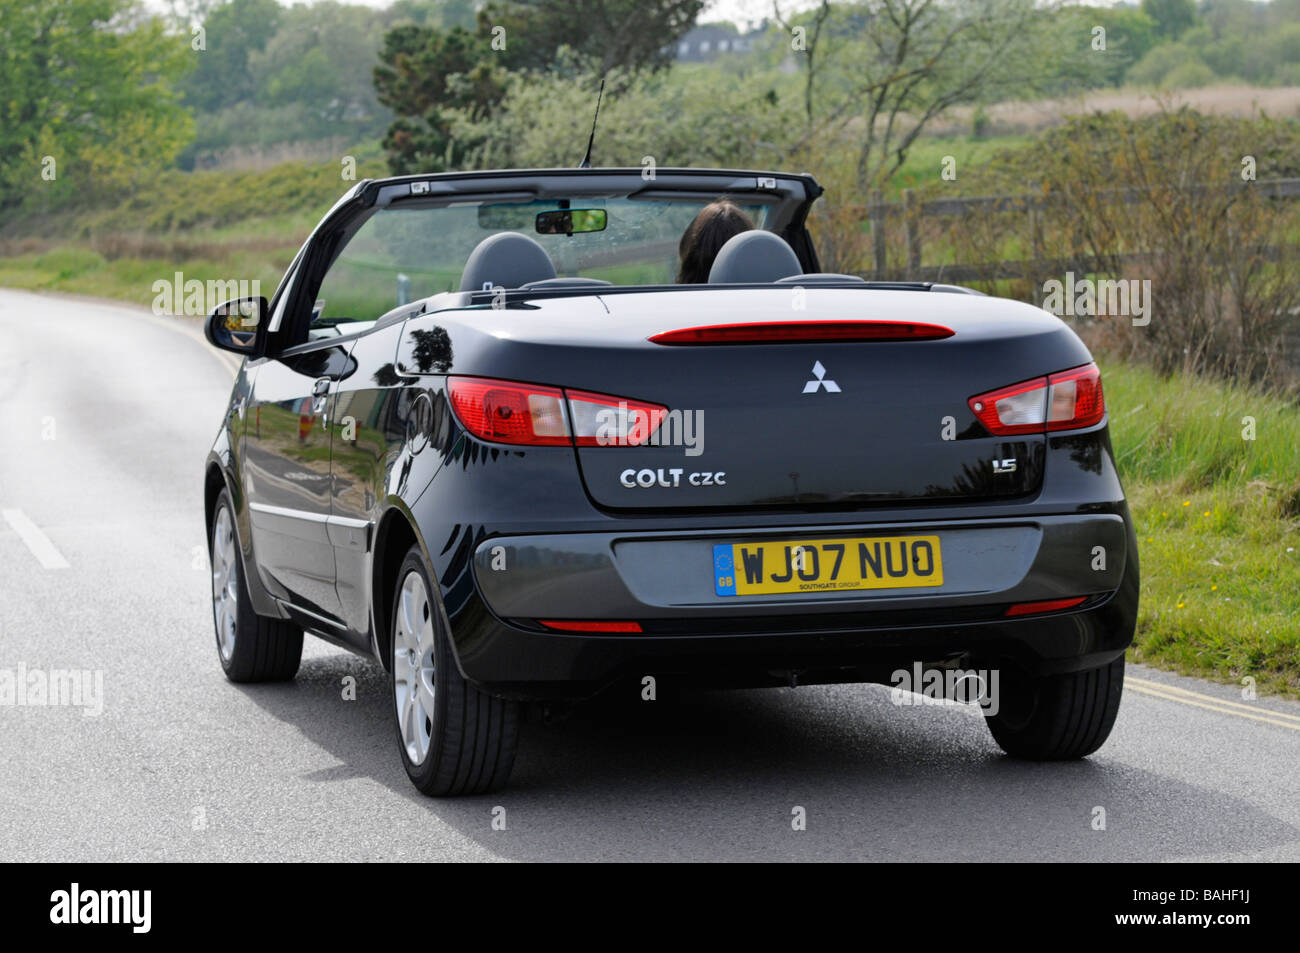 2007 Mitsubishi Colt CZC Cabriolet being driven along road by young